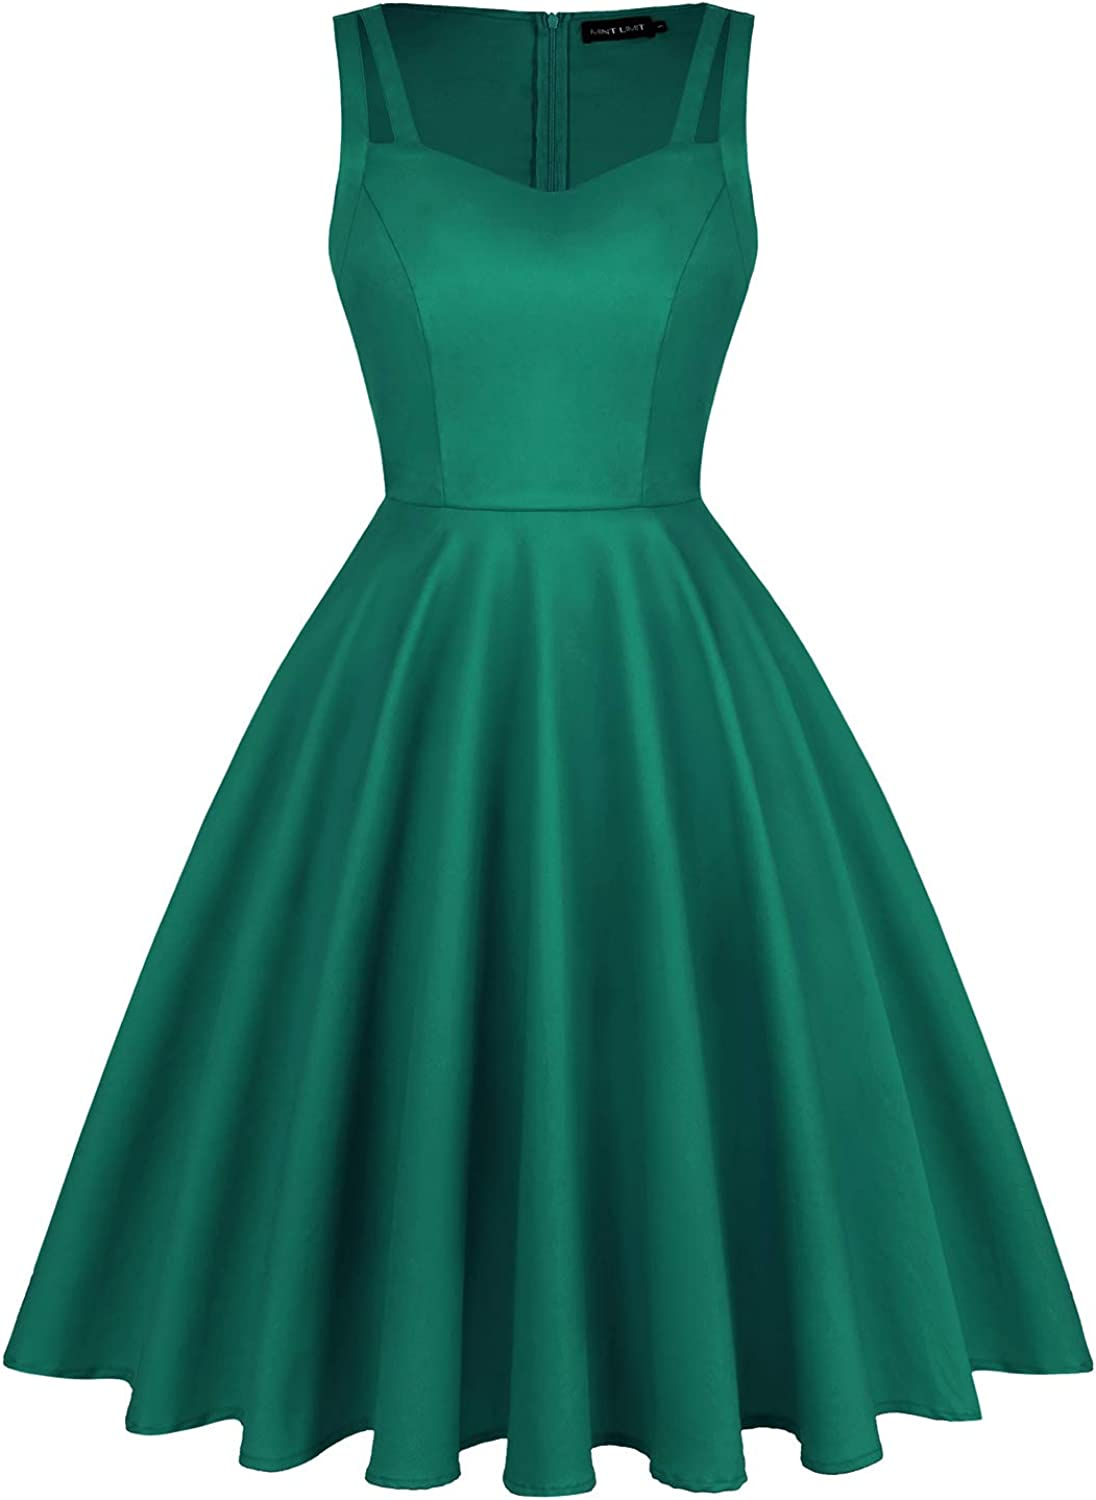 MINTLIMIT Women's 1950s Vintage Sweetheart Double Strap Retro Rockabilly Cocktail Party Swing Dress with Pockets